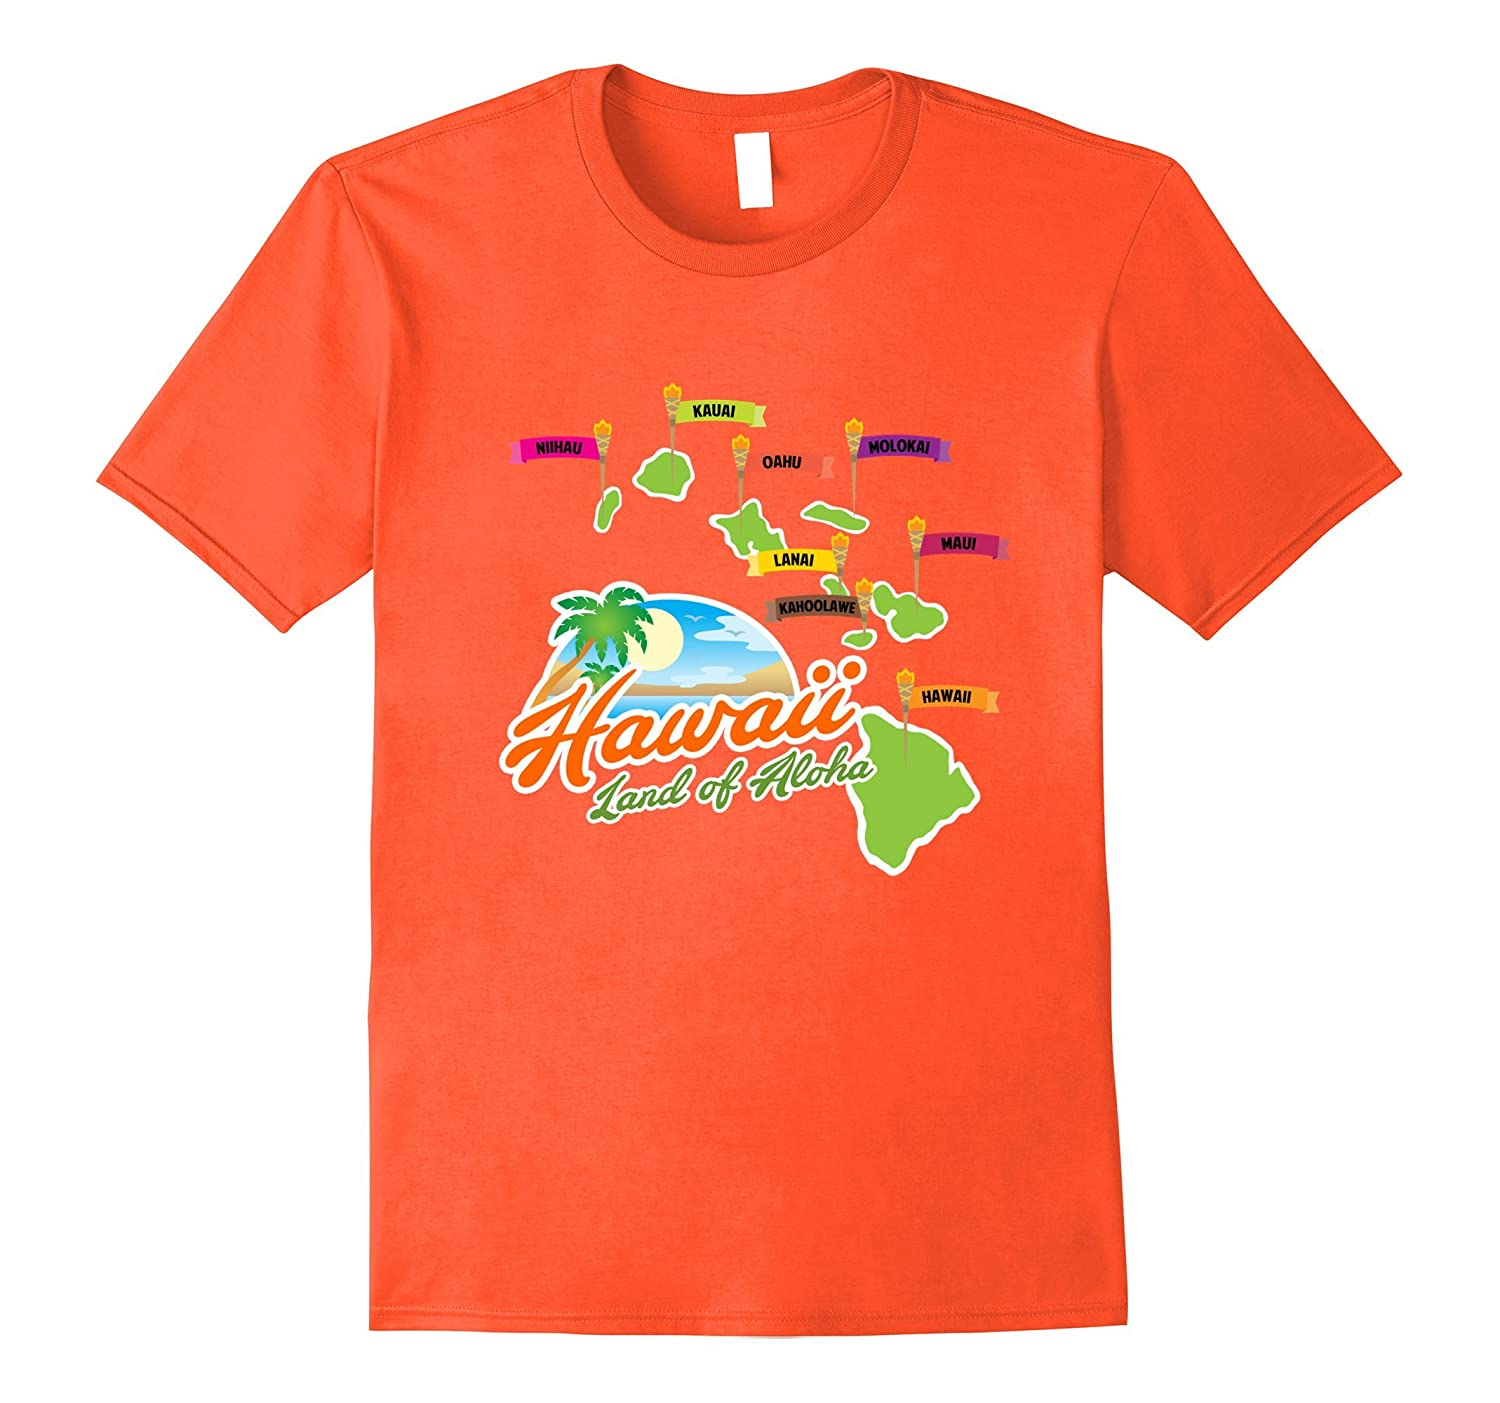 411dc8e960 Hawaiian Islands T-Shirt – Hawaii Land of Aloha Graphic Tee-FL